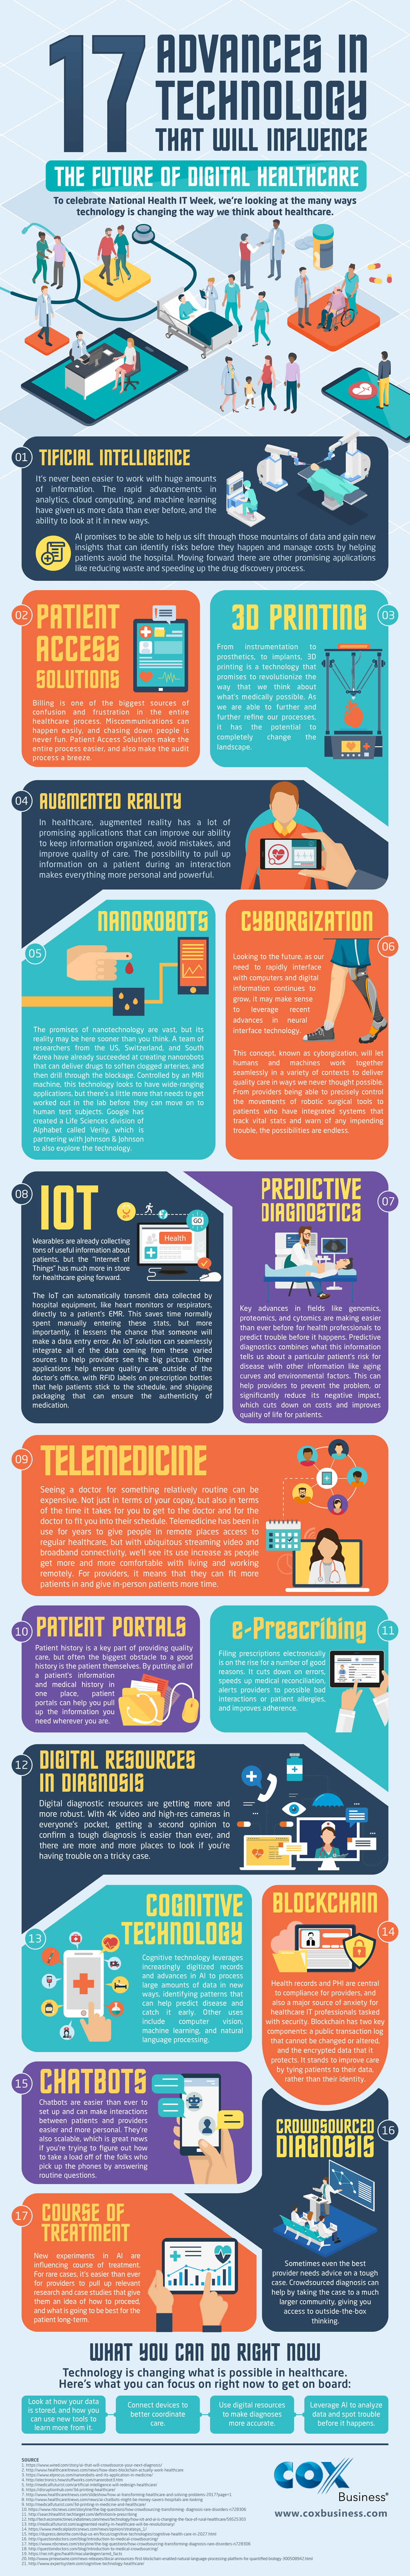 17 Advances in Technology That Will Influence Healthcare in 2018_900.jpg